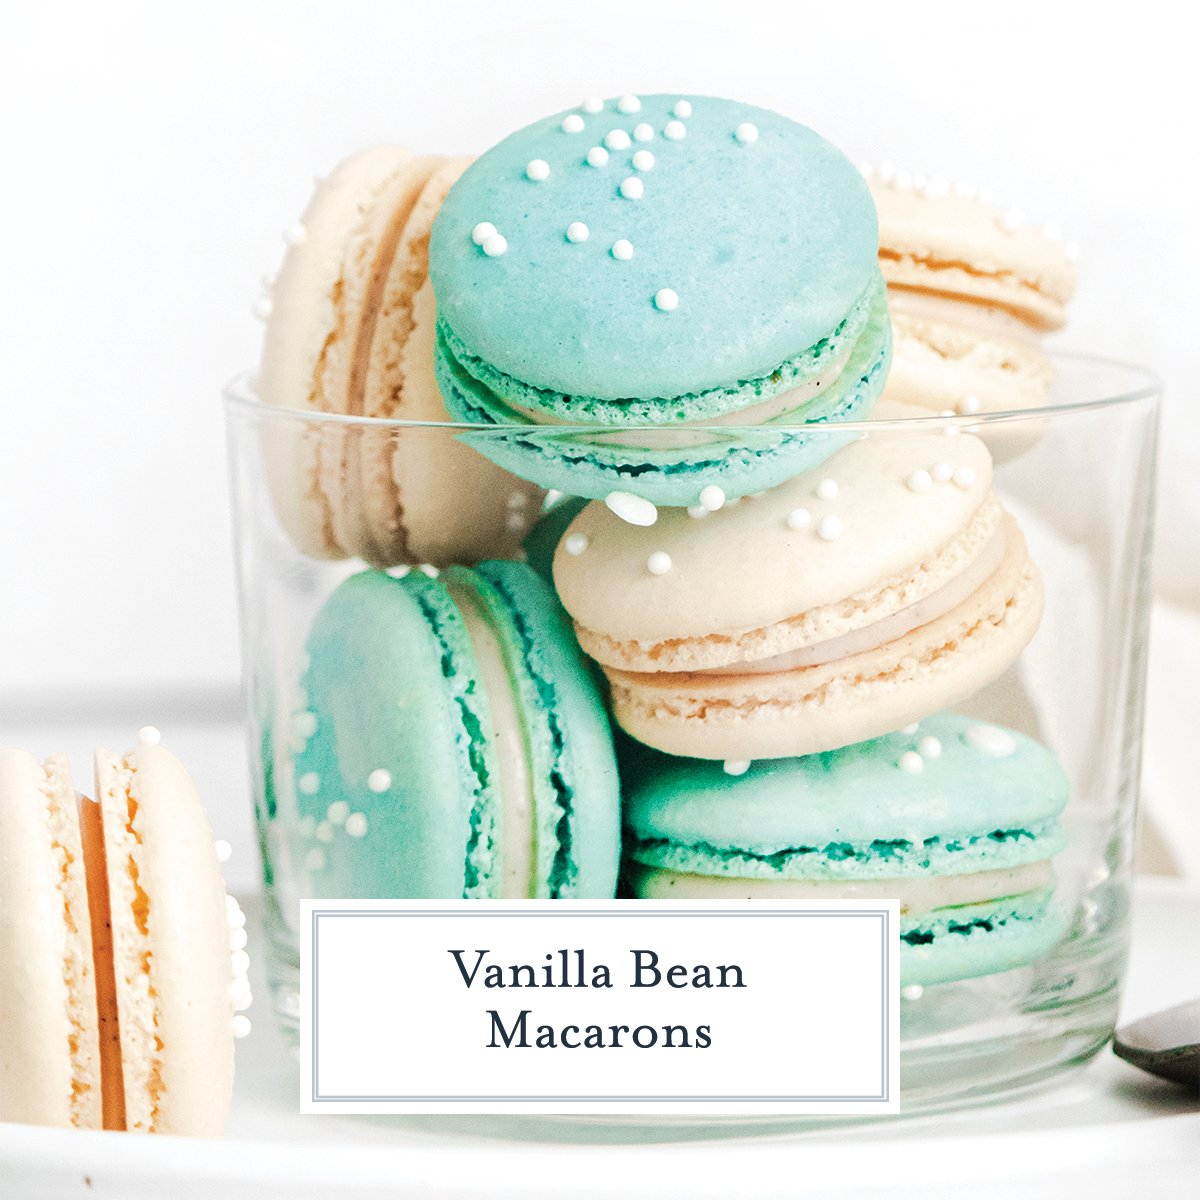 teal and white macarons in a glass